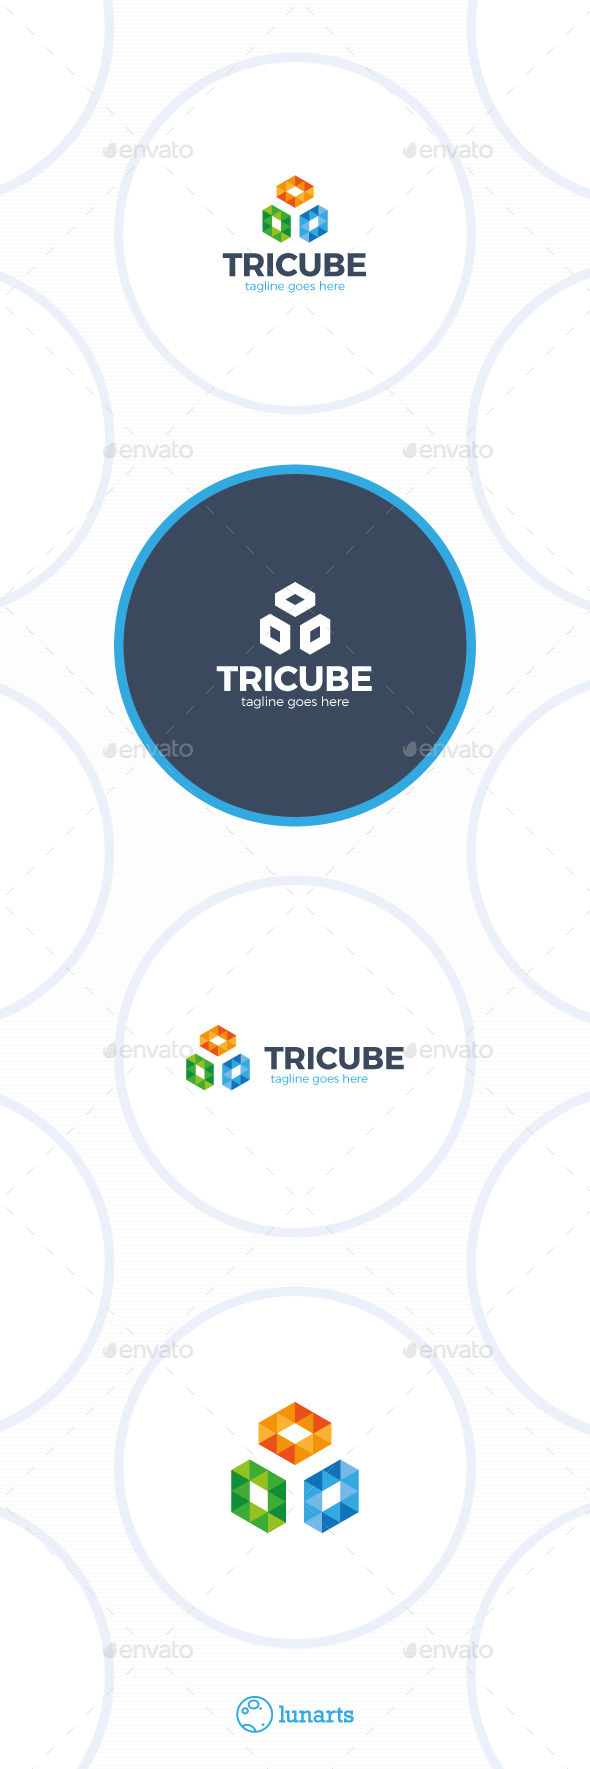 Three Cube Logo - Trinity Triangle Square - Abstract Logo Templates